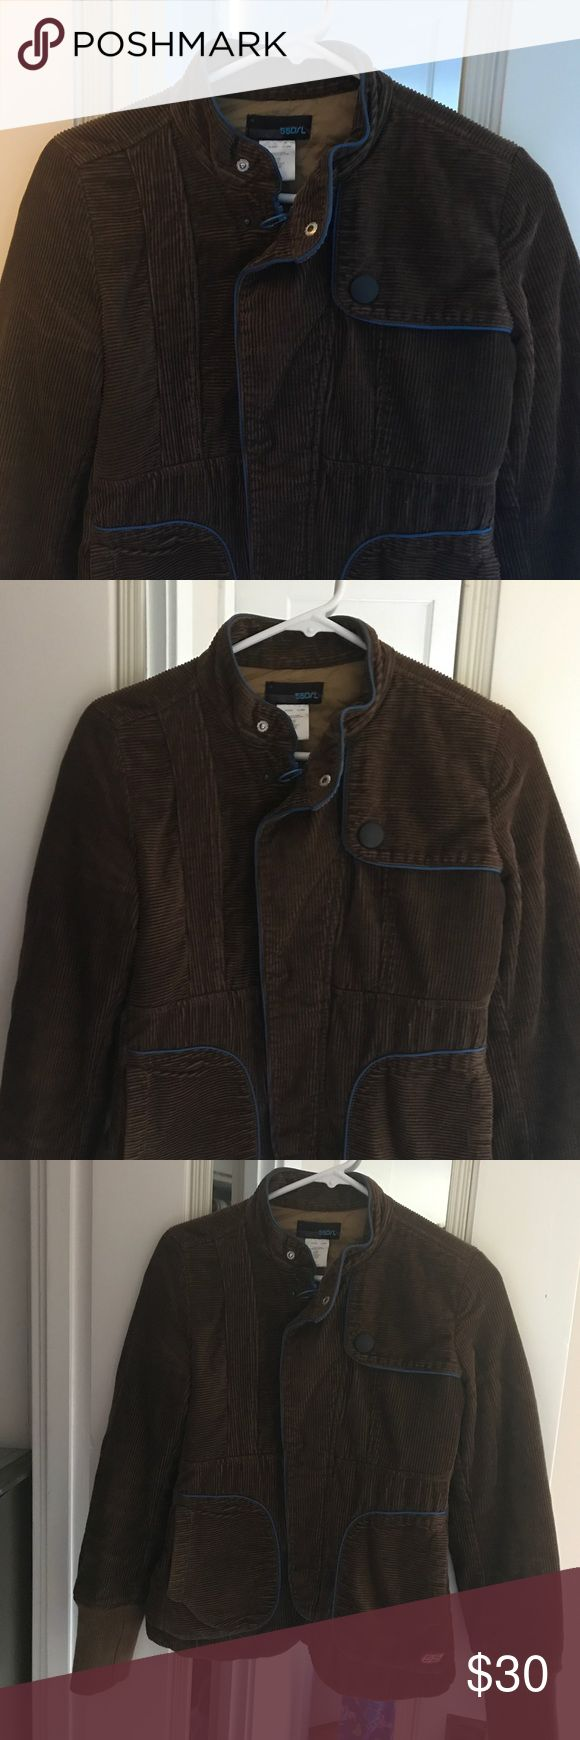 55DSL Diesel Corduroy blazer This a nice fit corduroy blazer jacket. In excellent used condition. Diesel Jackets & Coats Blazers